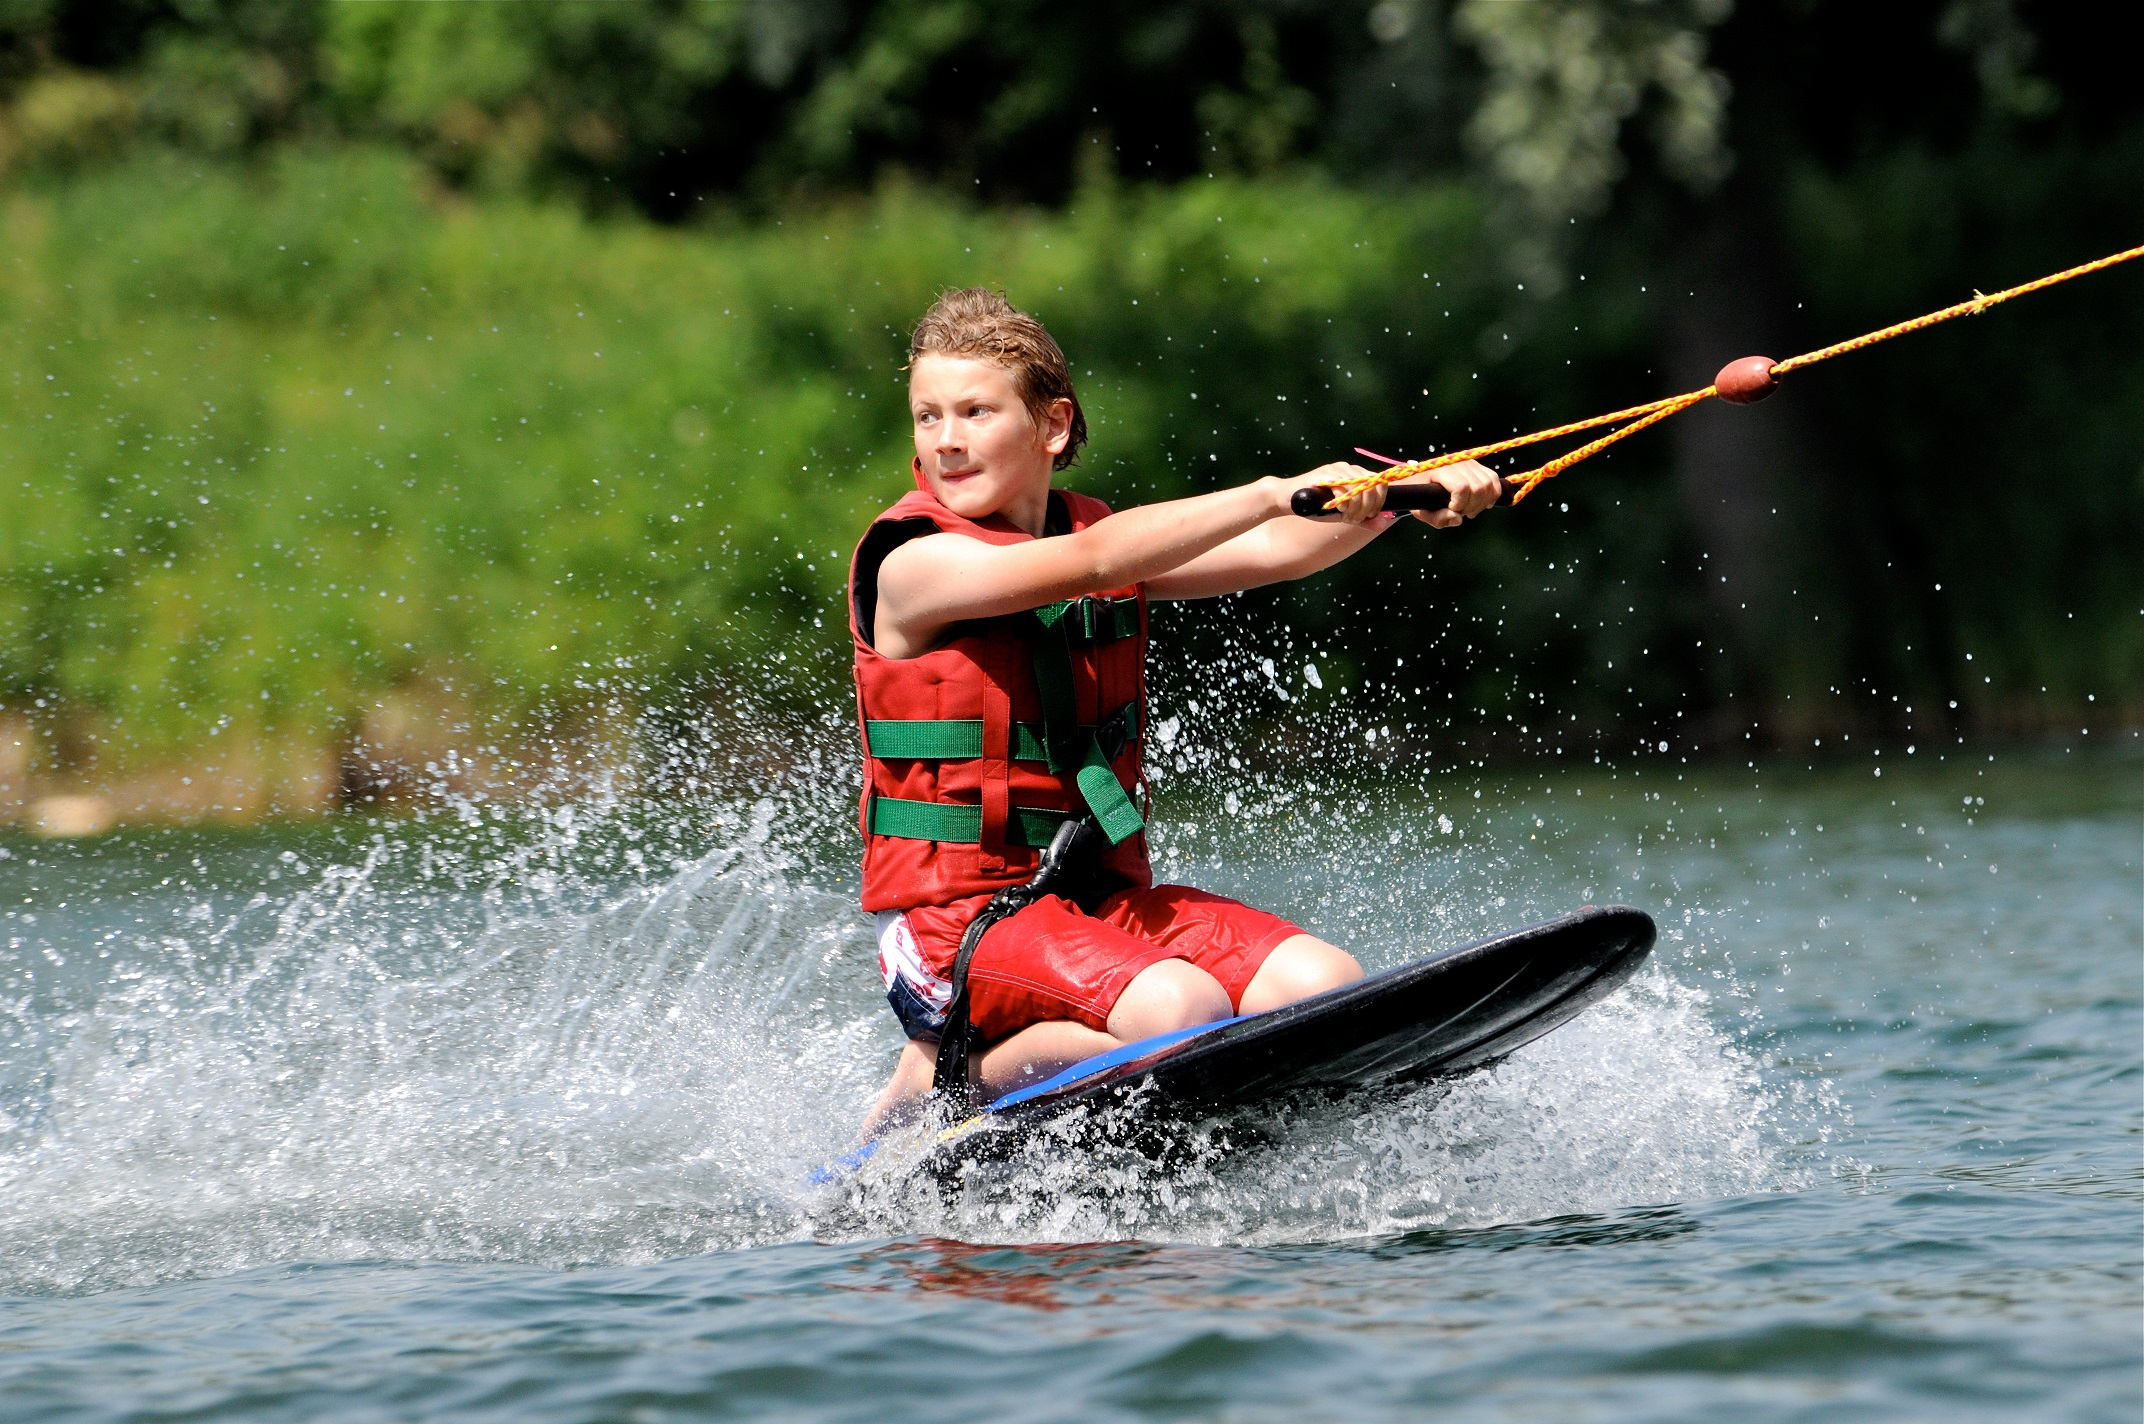 kneeboarding, waterskiing, water sports, water fun